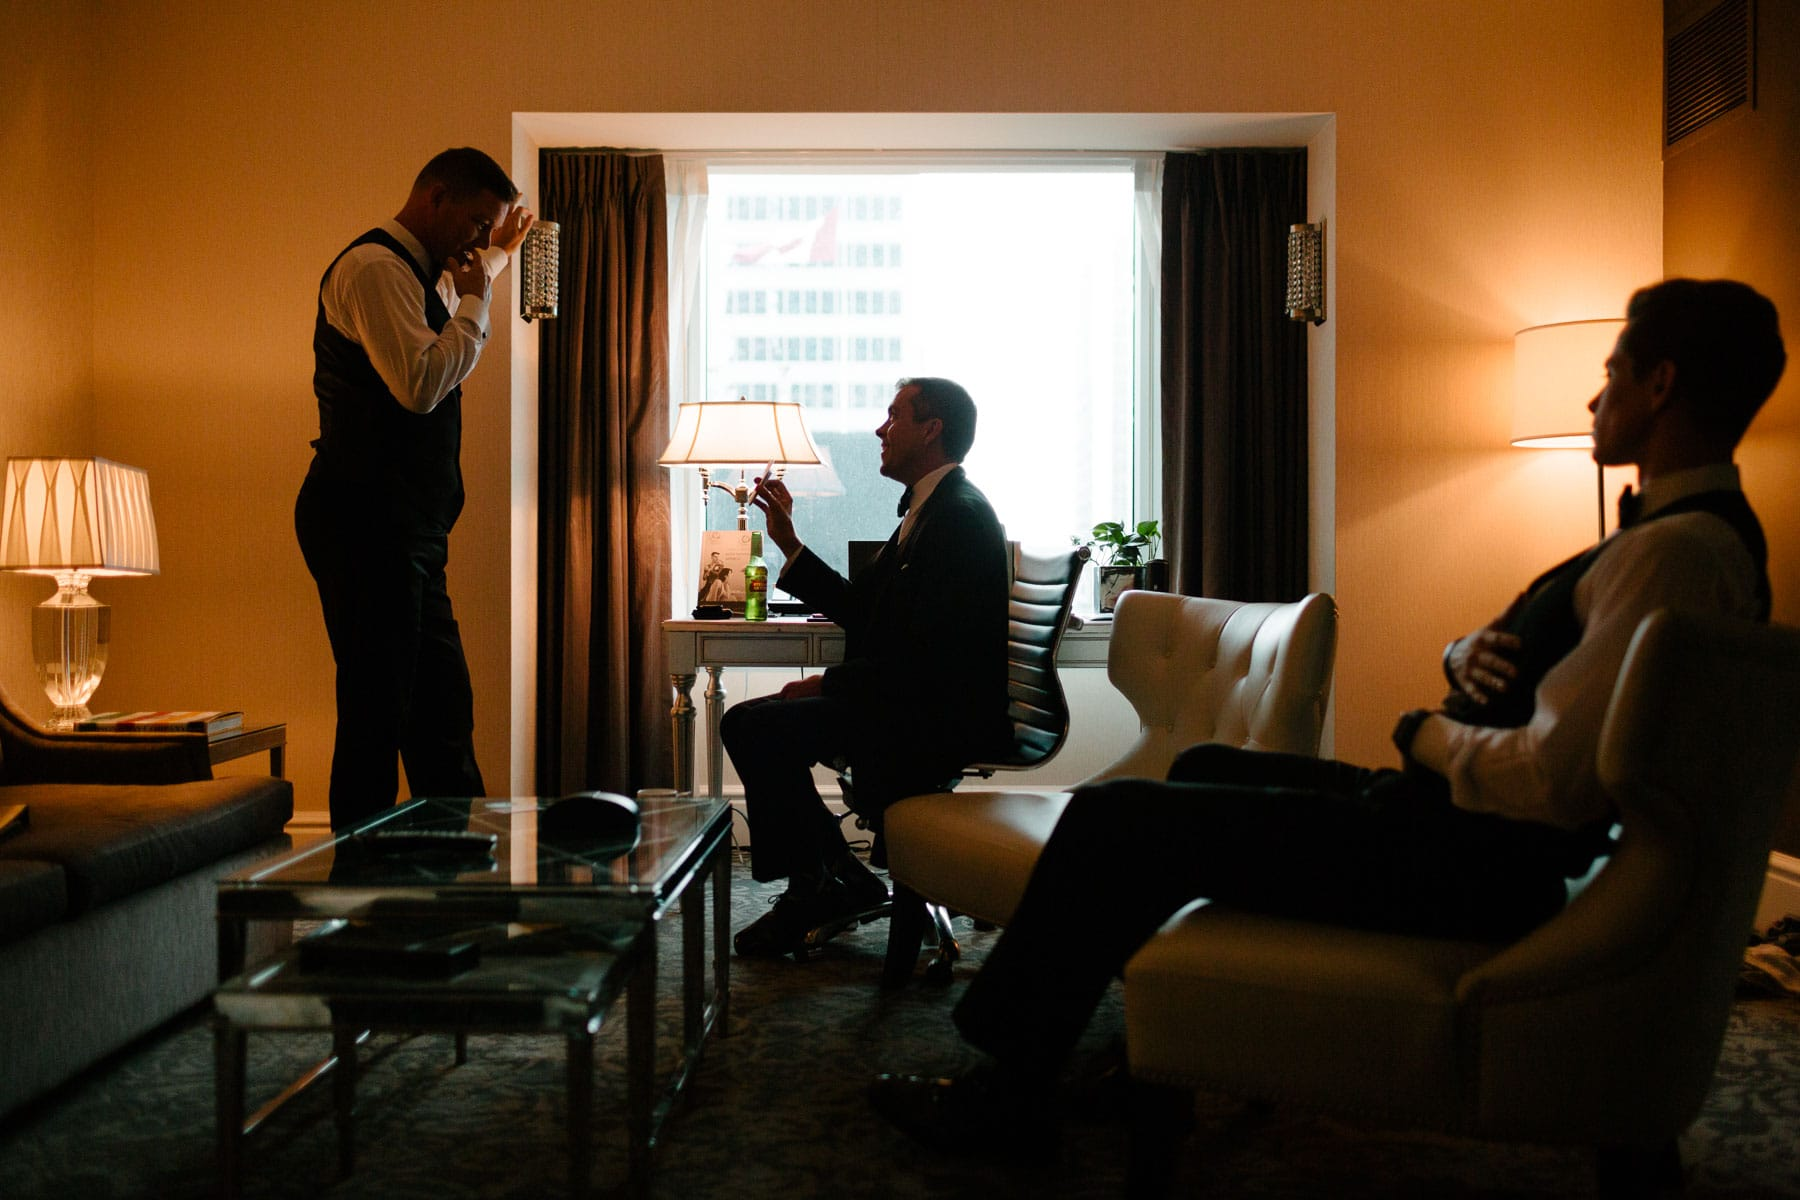 The groom is silhouetted against a bright window while talking to his friend at the Trump Hotel in Toronto.